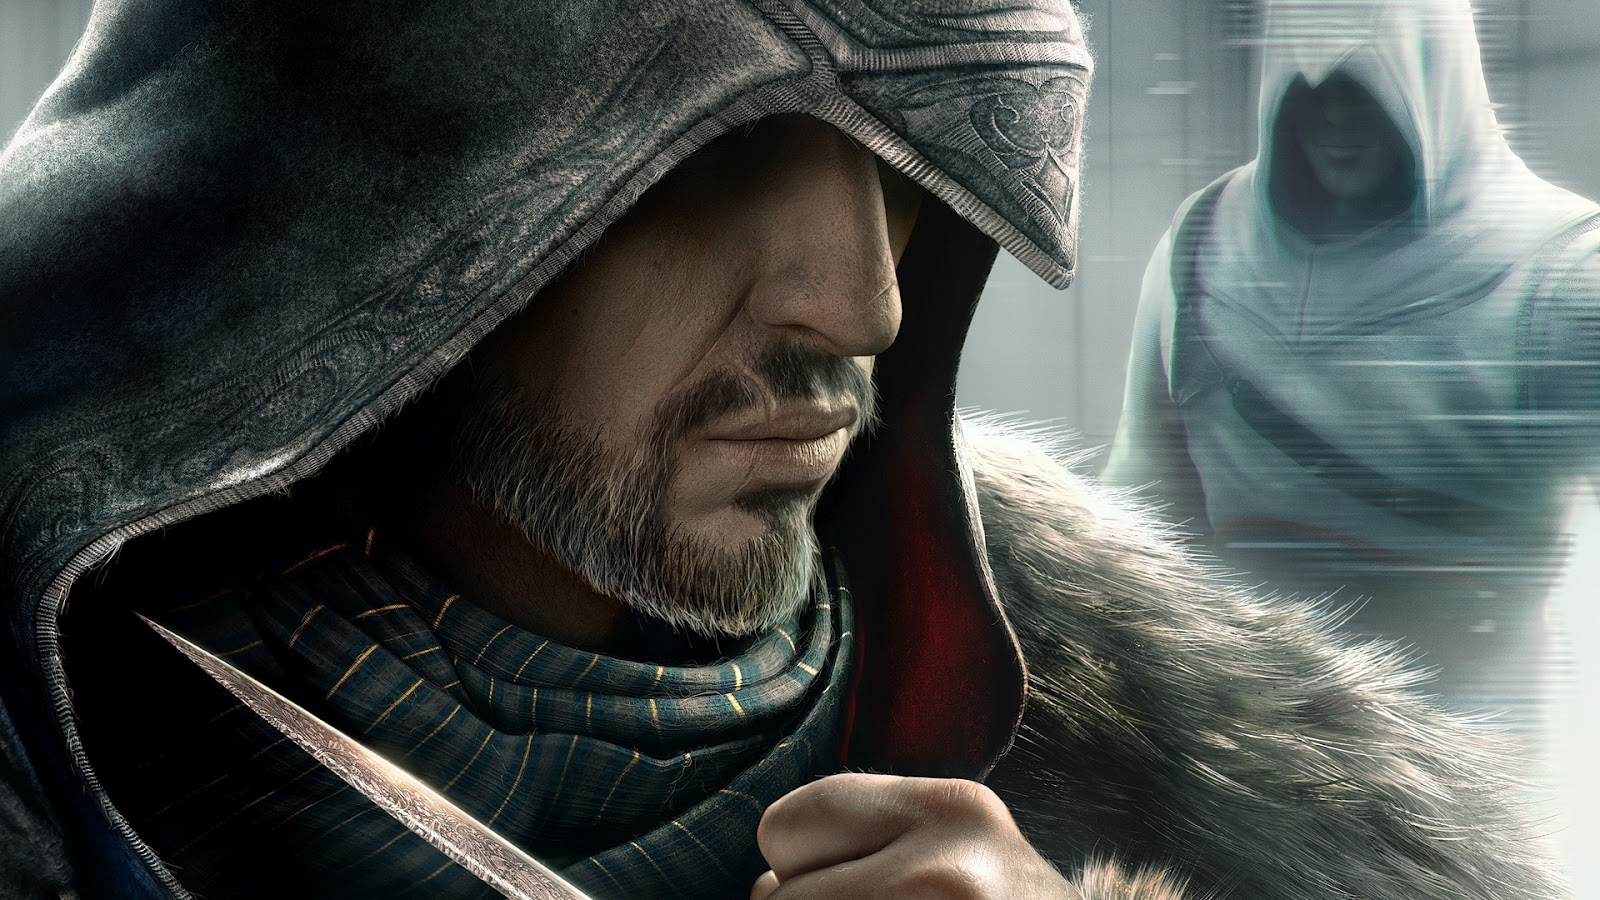 http://2.bp.blogspot.com/-irXt6O0Bec8/UA1jzkPRb7I/AAAAAAAAApc/D9leCdlDSQw/s1600/Assassins+Creed+Brotherhood+wallpapers+5.jpg